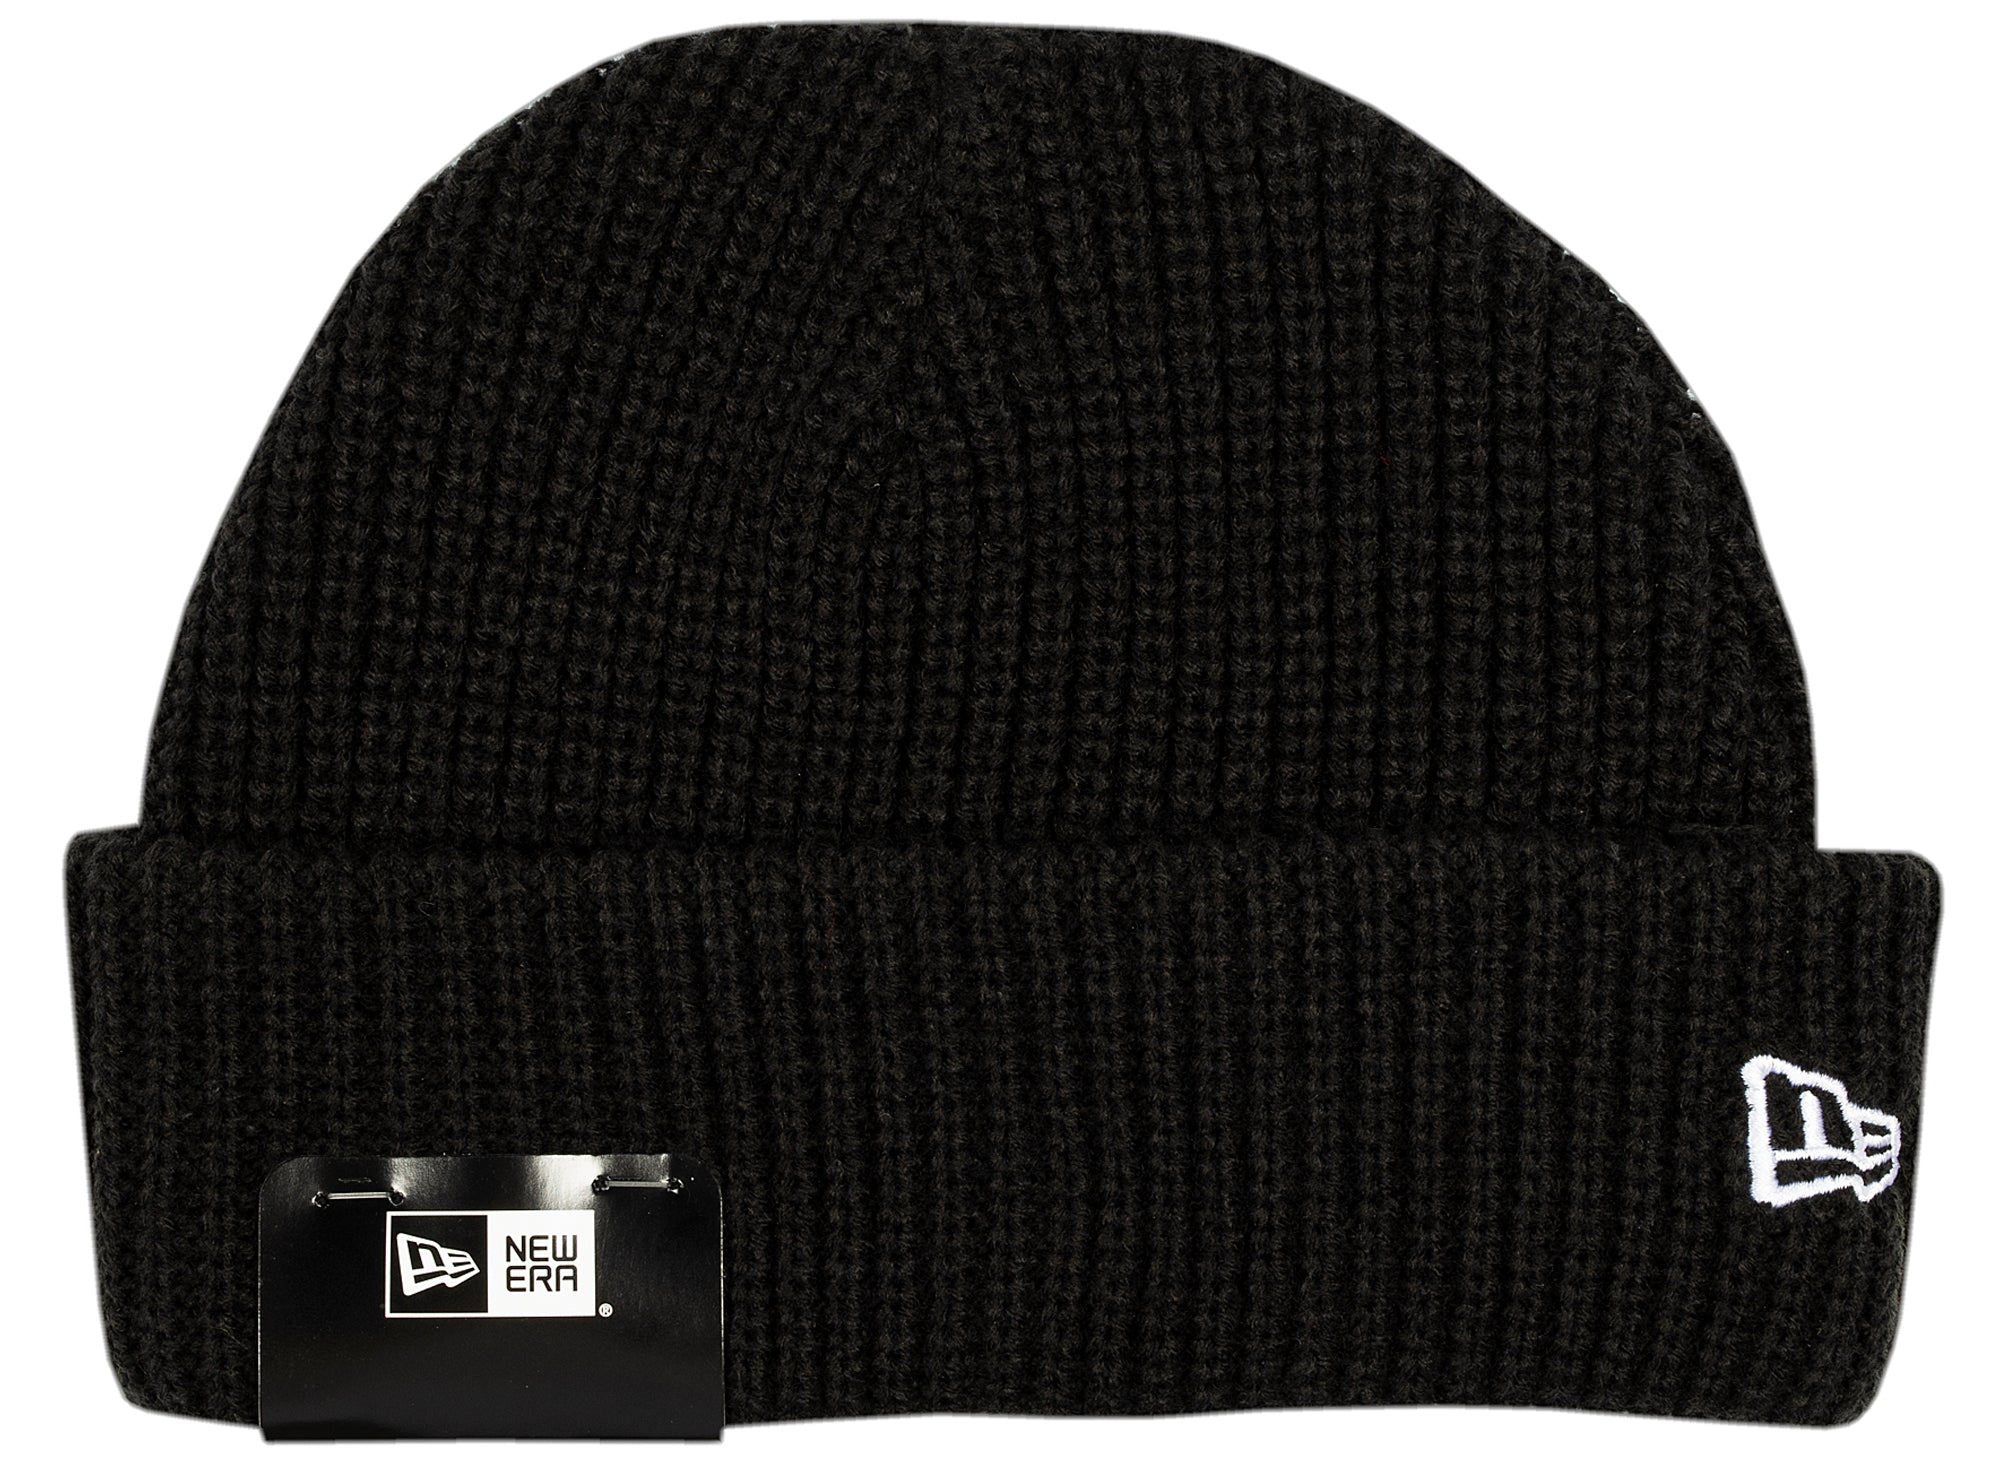 New Era Knit Skully Cap in Black xld